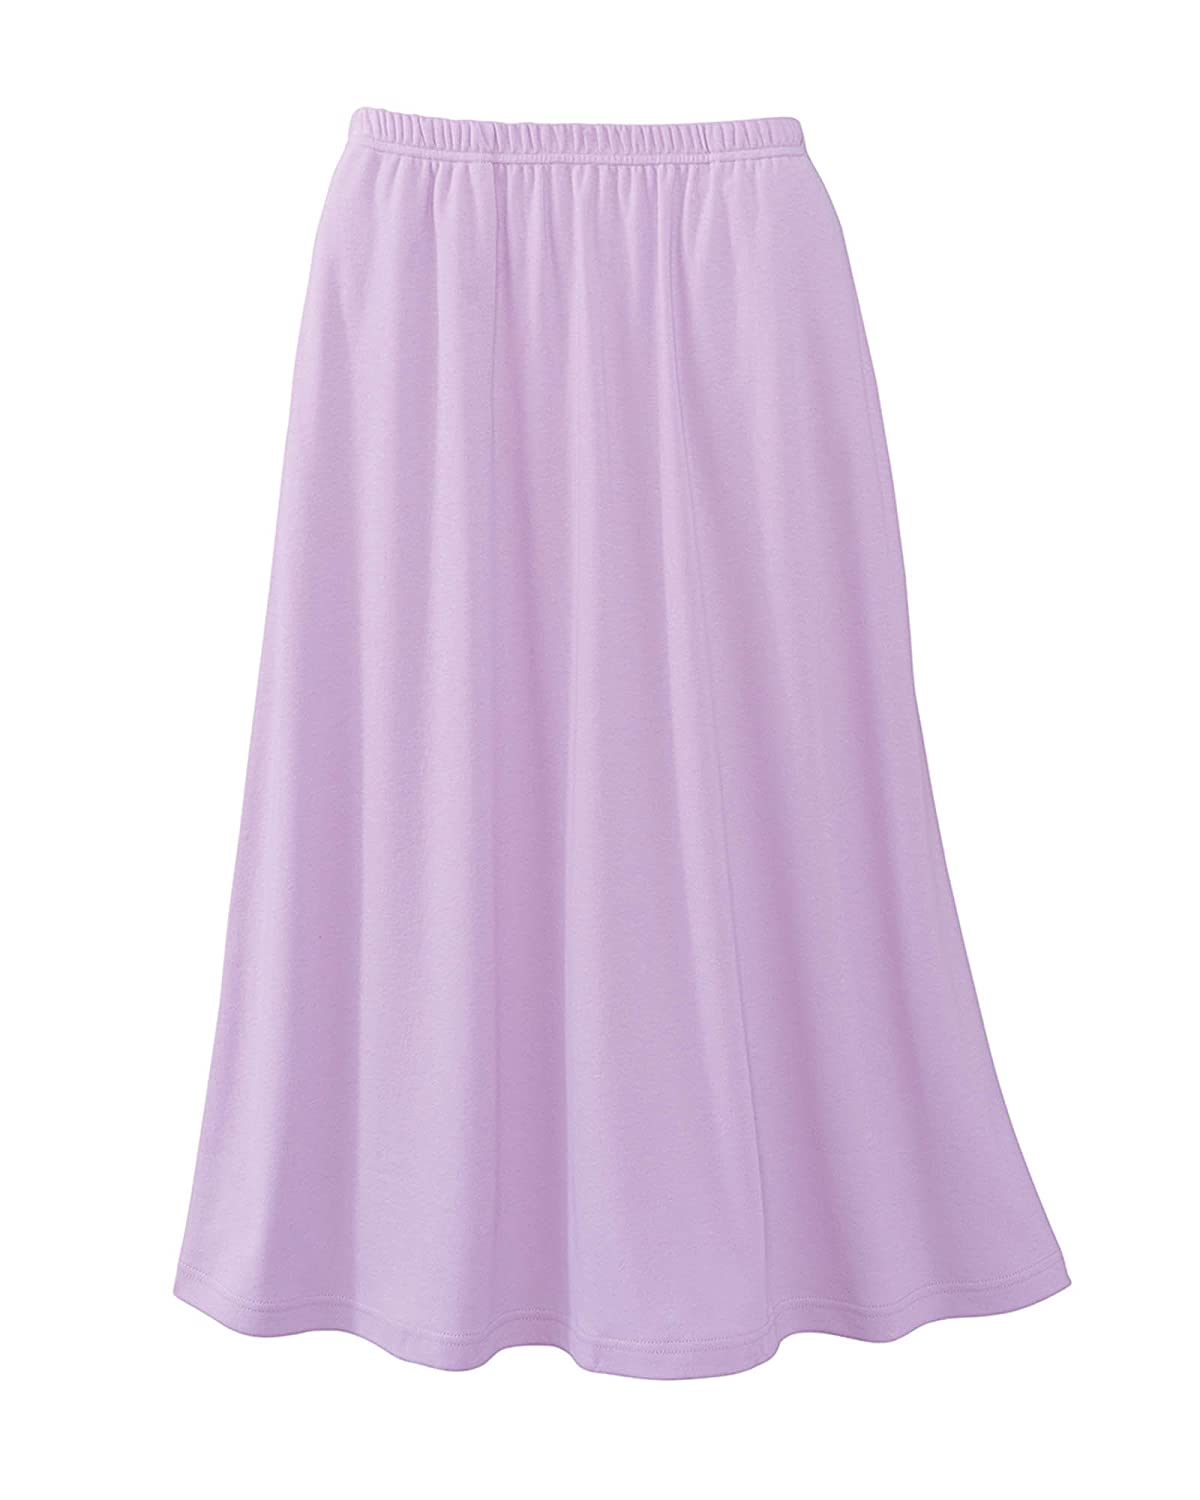 UltraSofts Skirt 17269